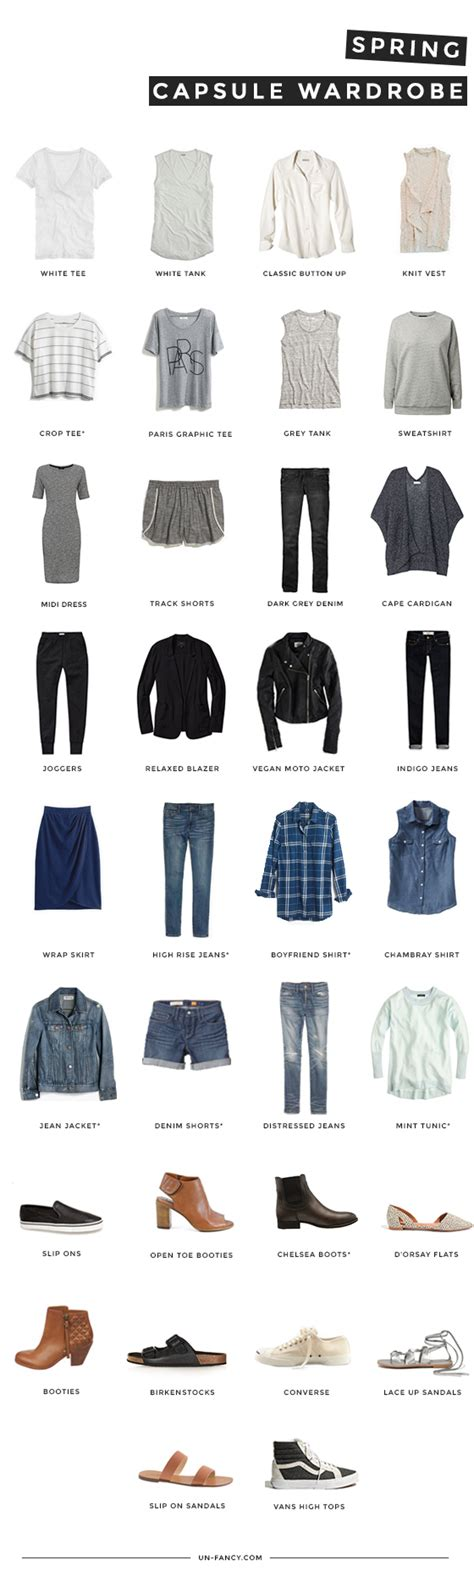 capsule biography meaning and exles the capsule wardrobe wardrobe building top